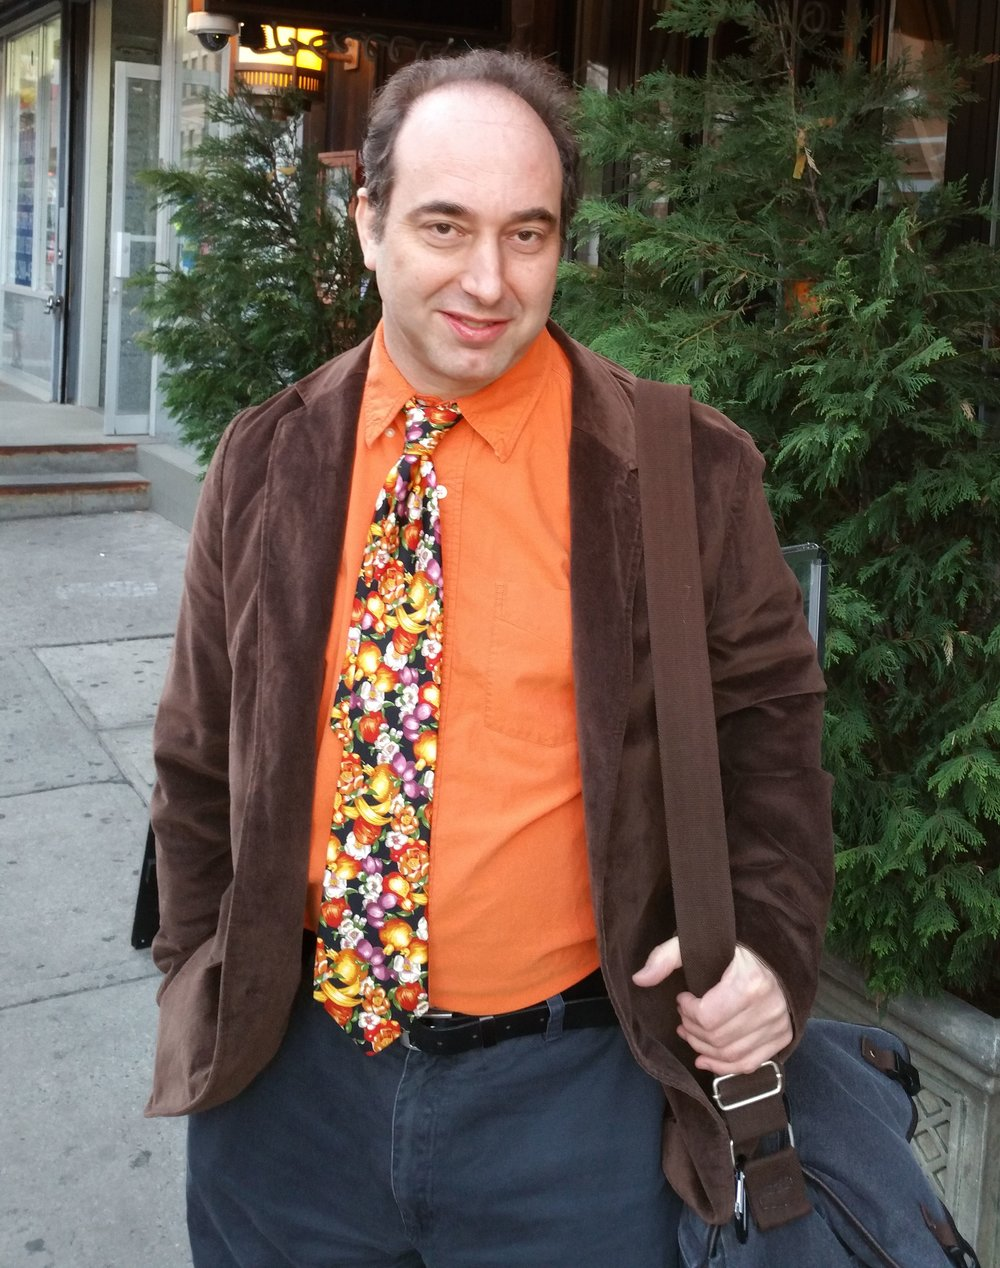 Native New Yorker - and Broadway's Next Hit Musical die hard - Ross Mernyk